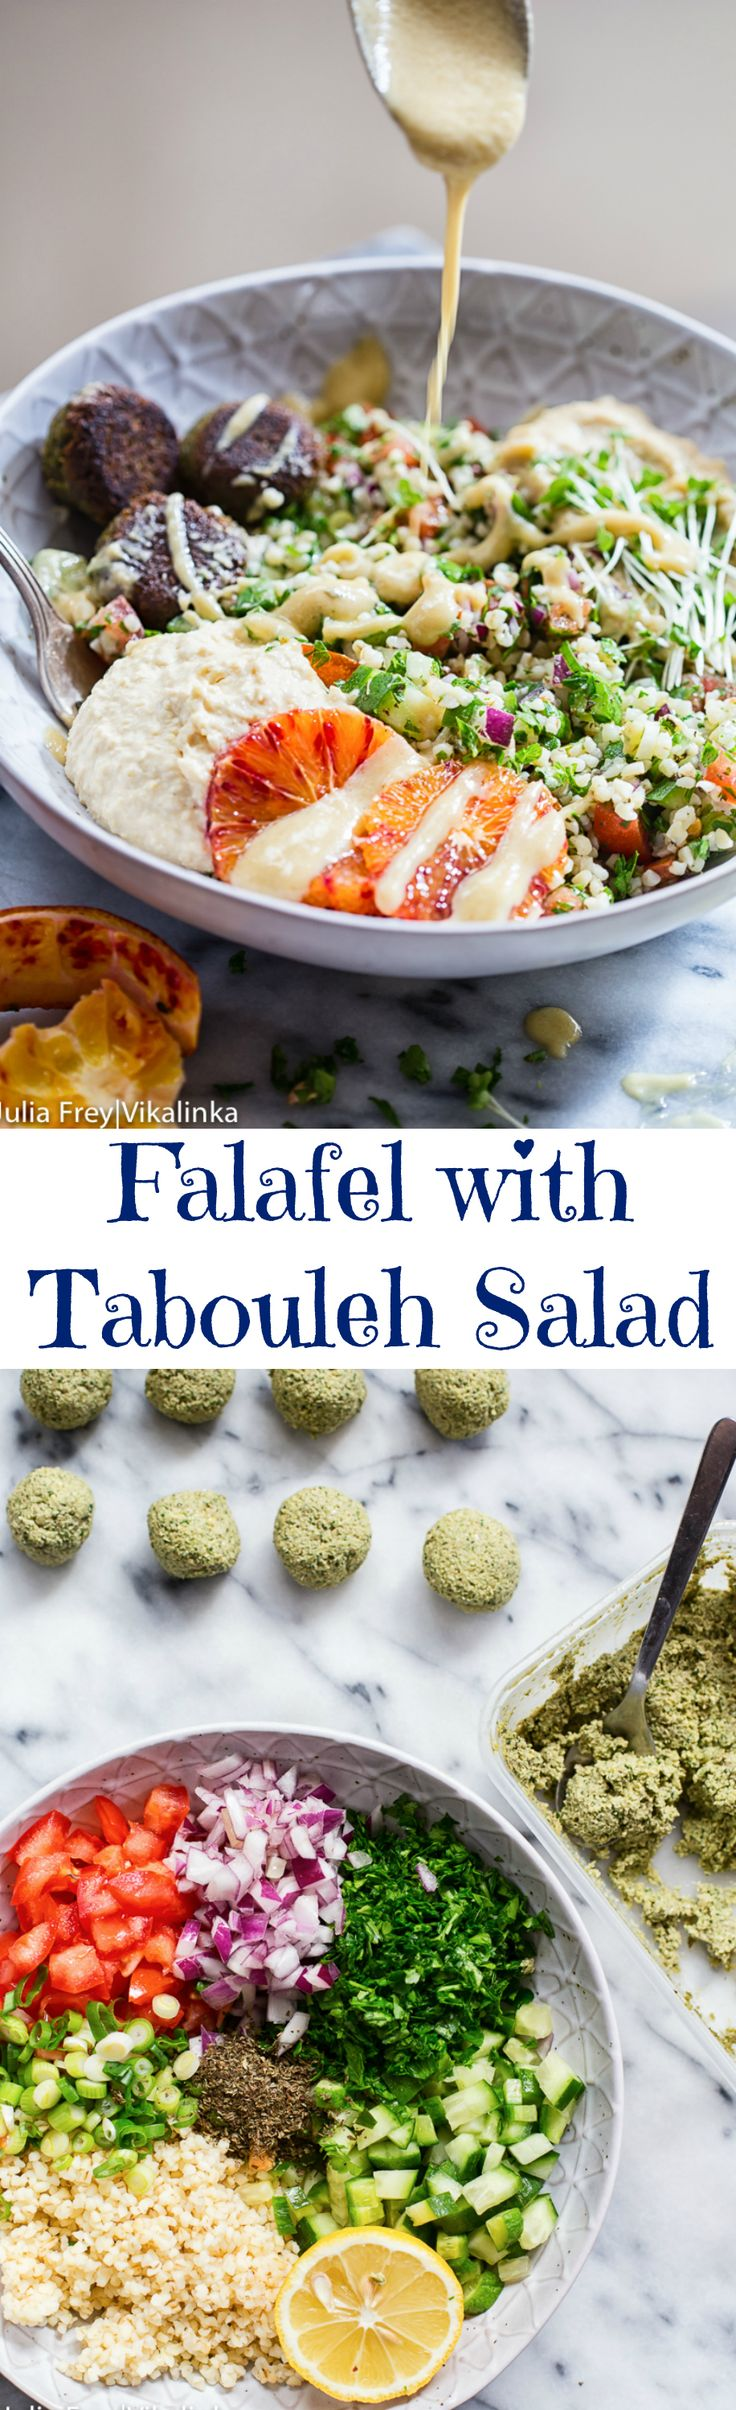 This colourful bowl of falafel with tabouleh, hummus and baba ganoush drizzled with garlic tahini dressing will make any ordinary lunch into an event!